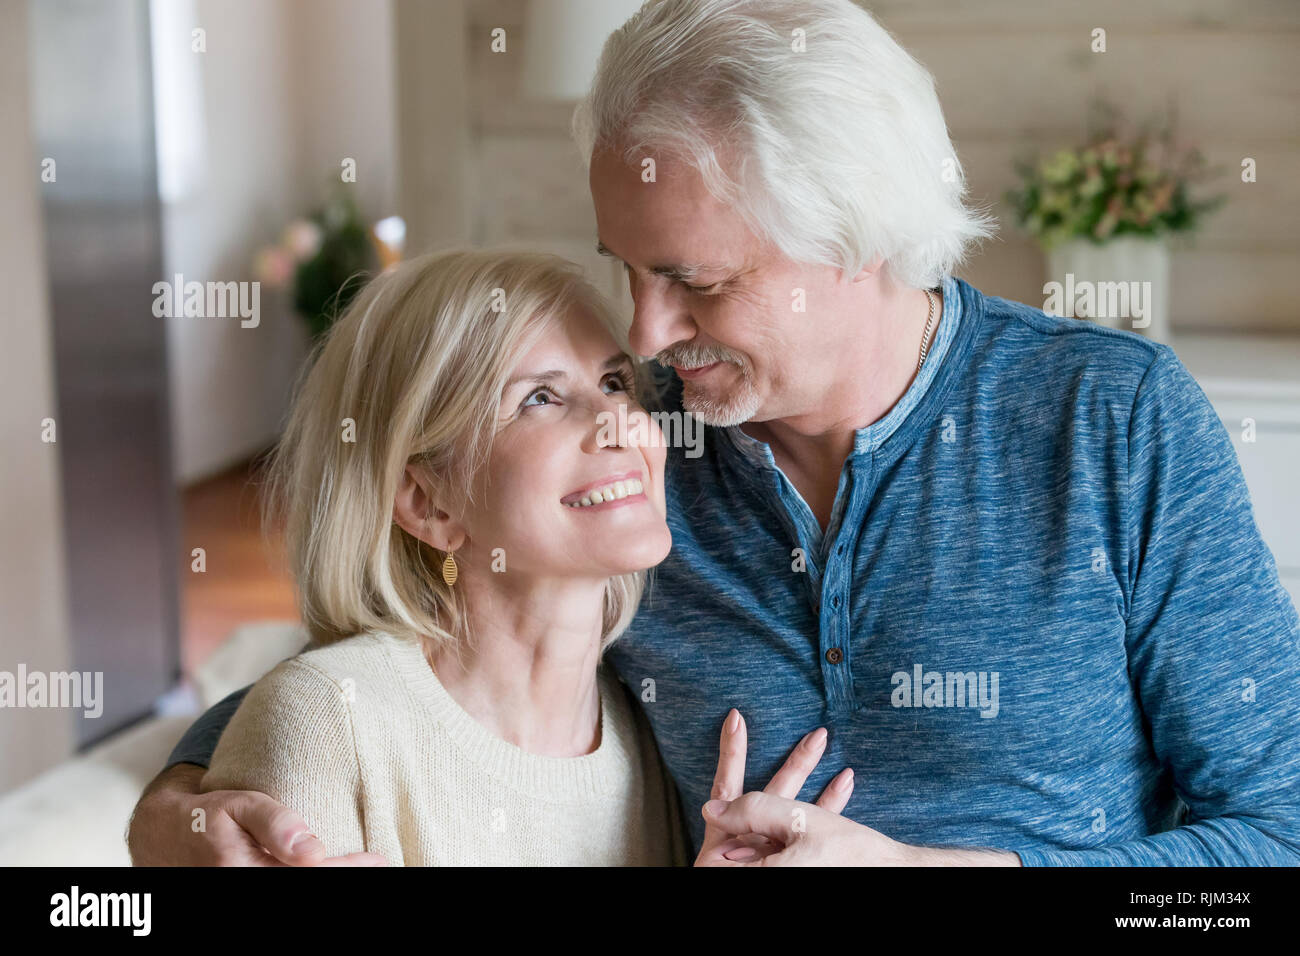 Close up of middle aged couple in love Photo Stock